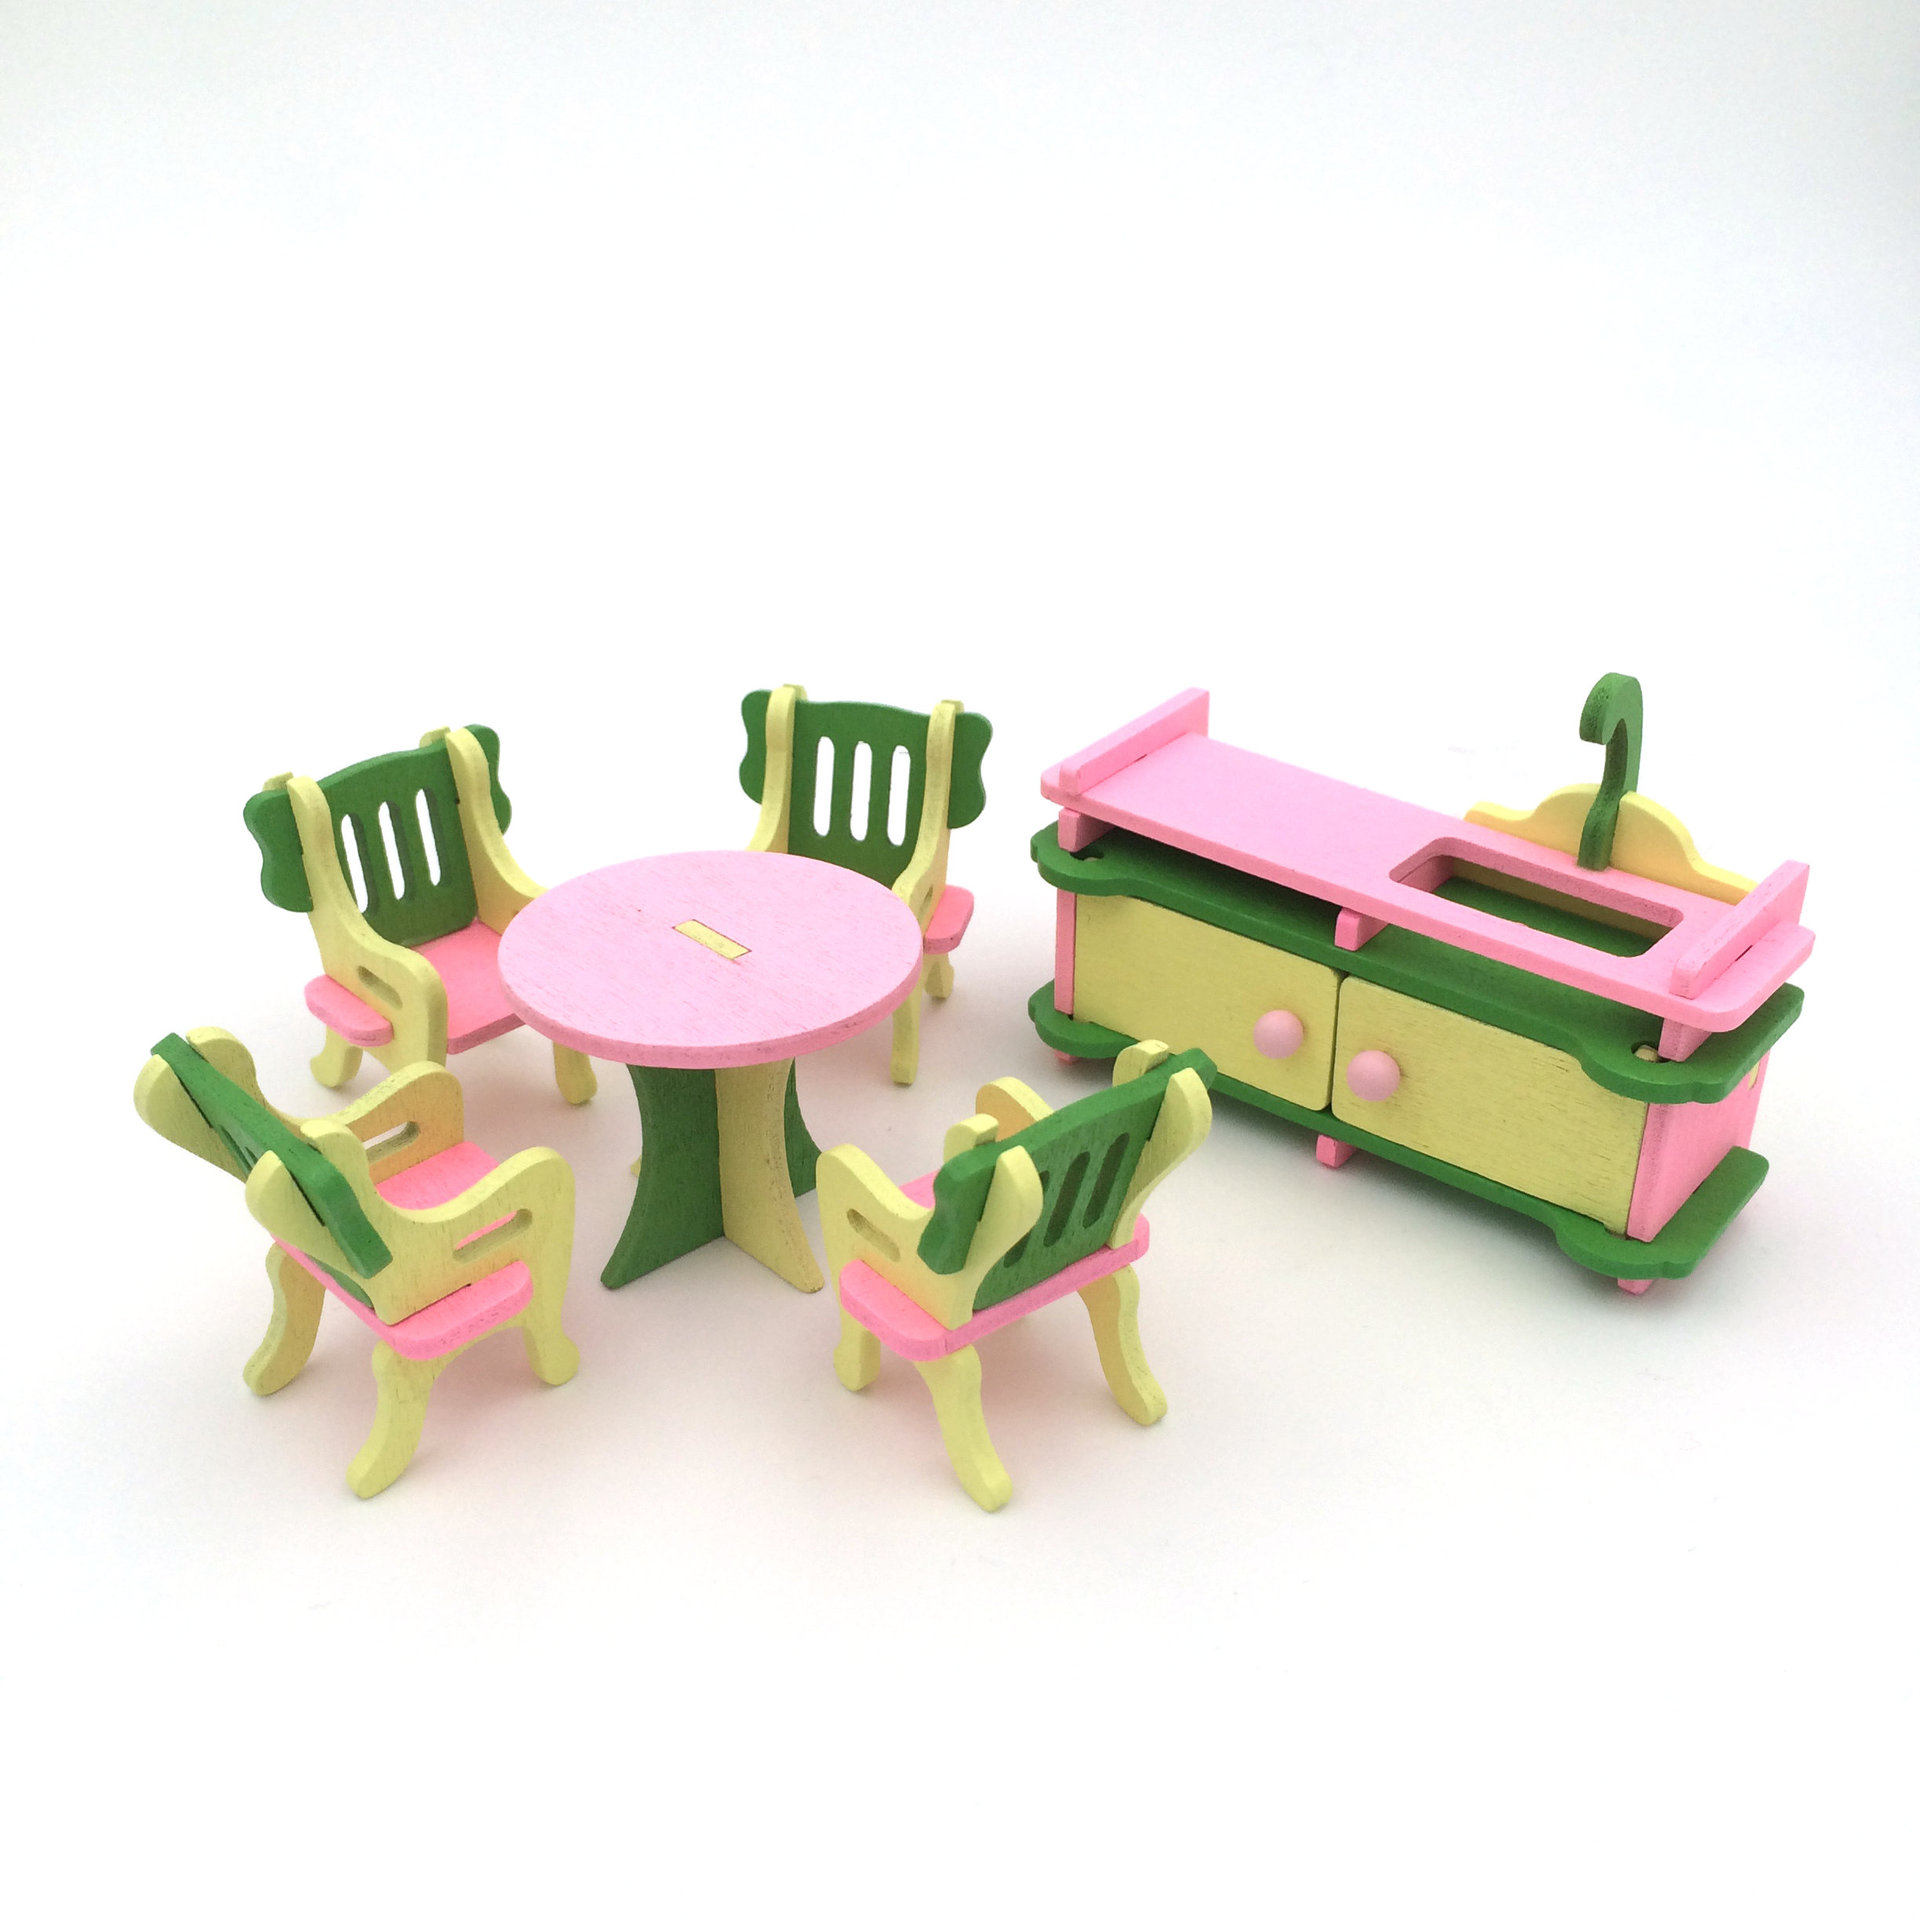 Compare Prices on Girls Kitchen Set- Online Shopping/Buy Low Price ...